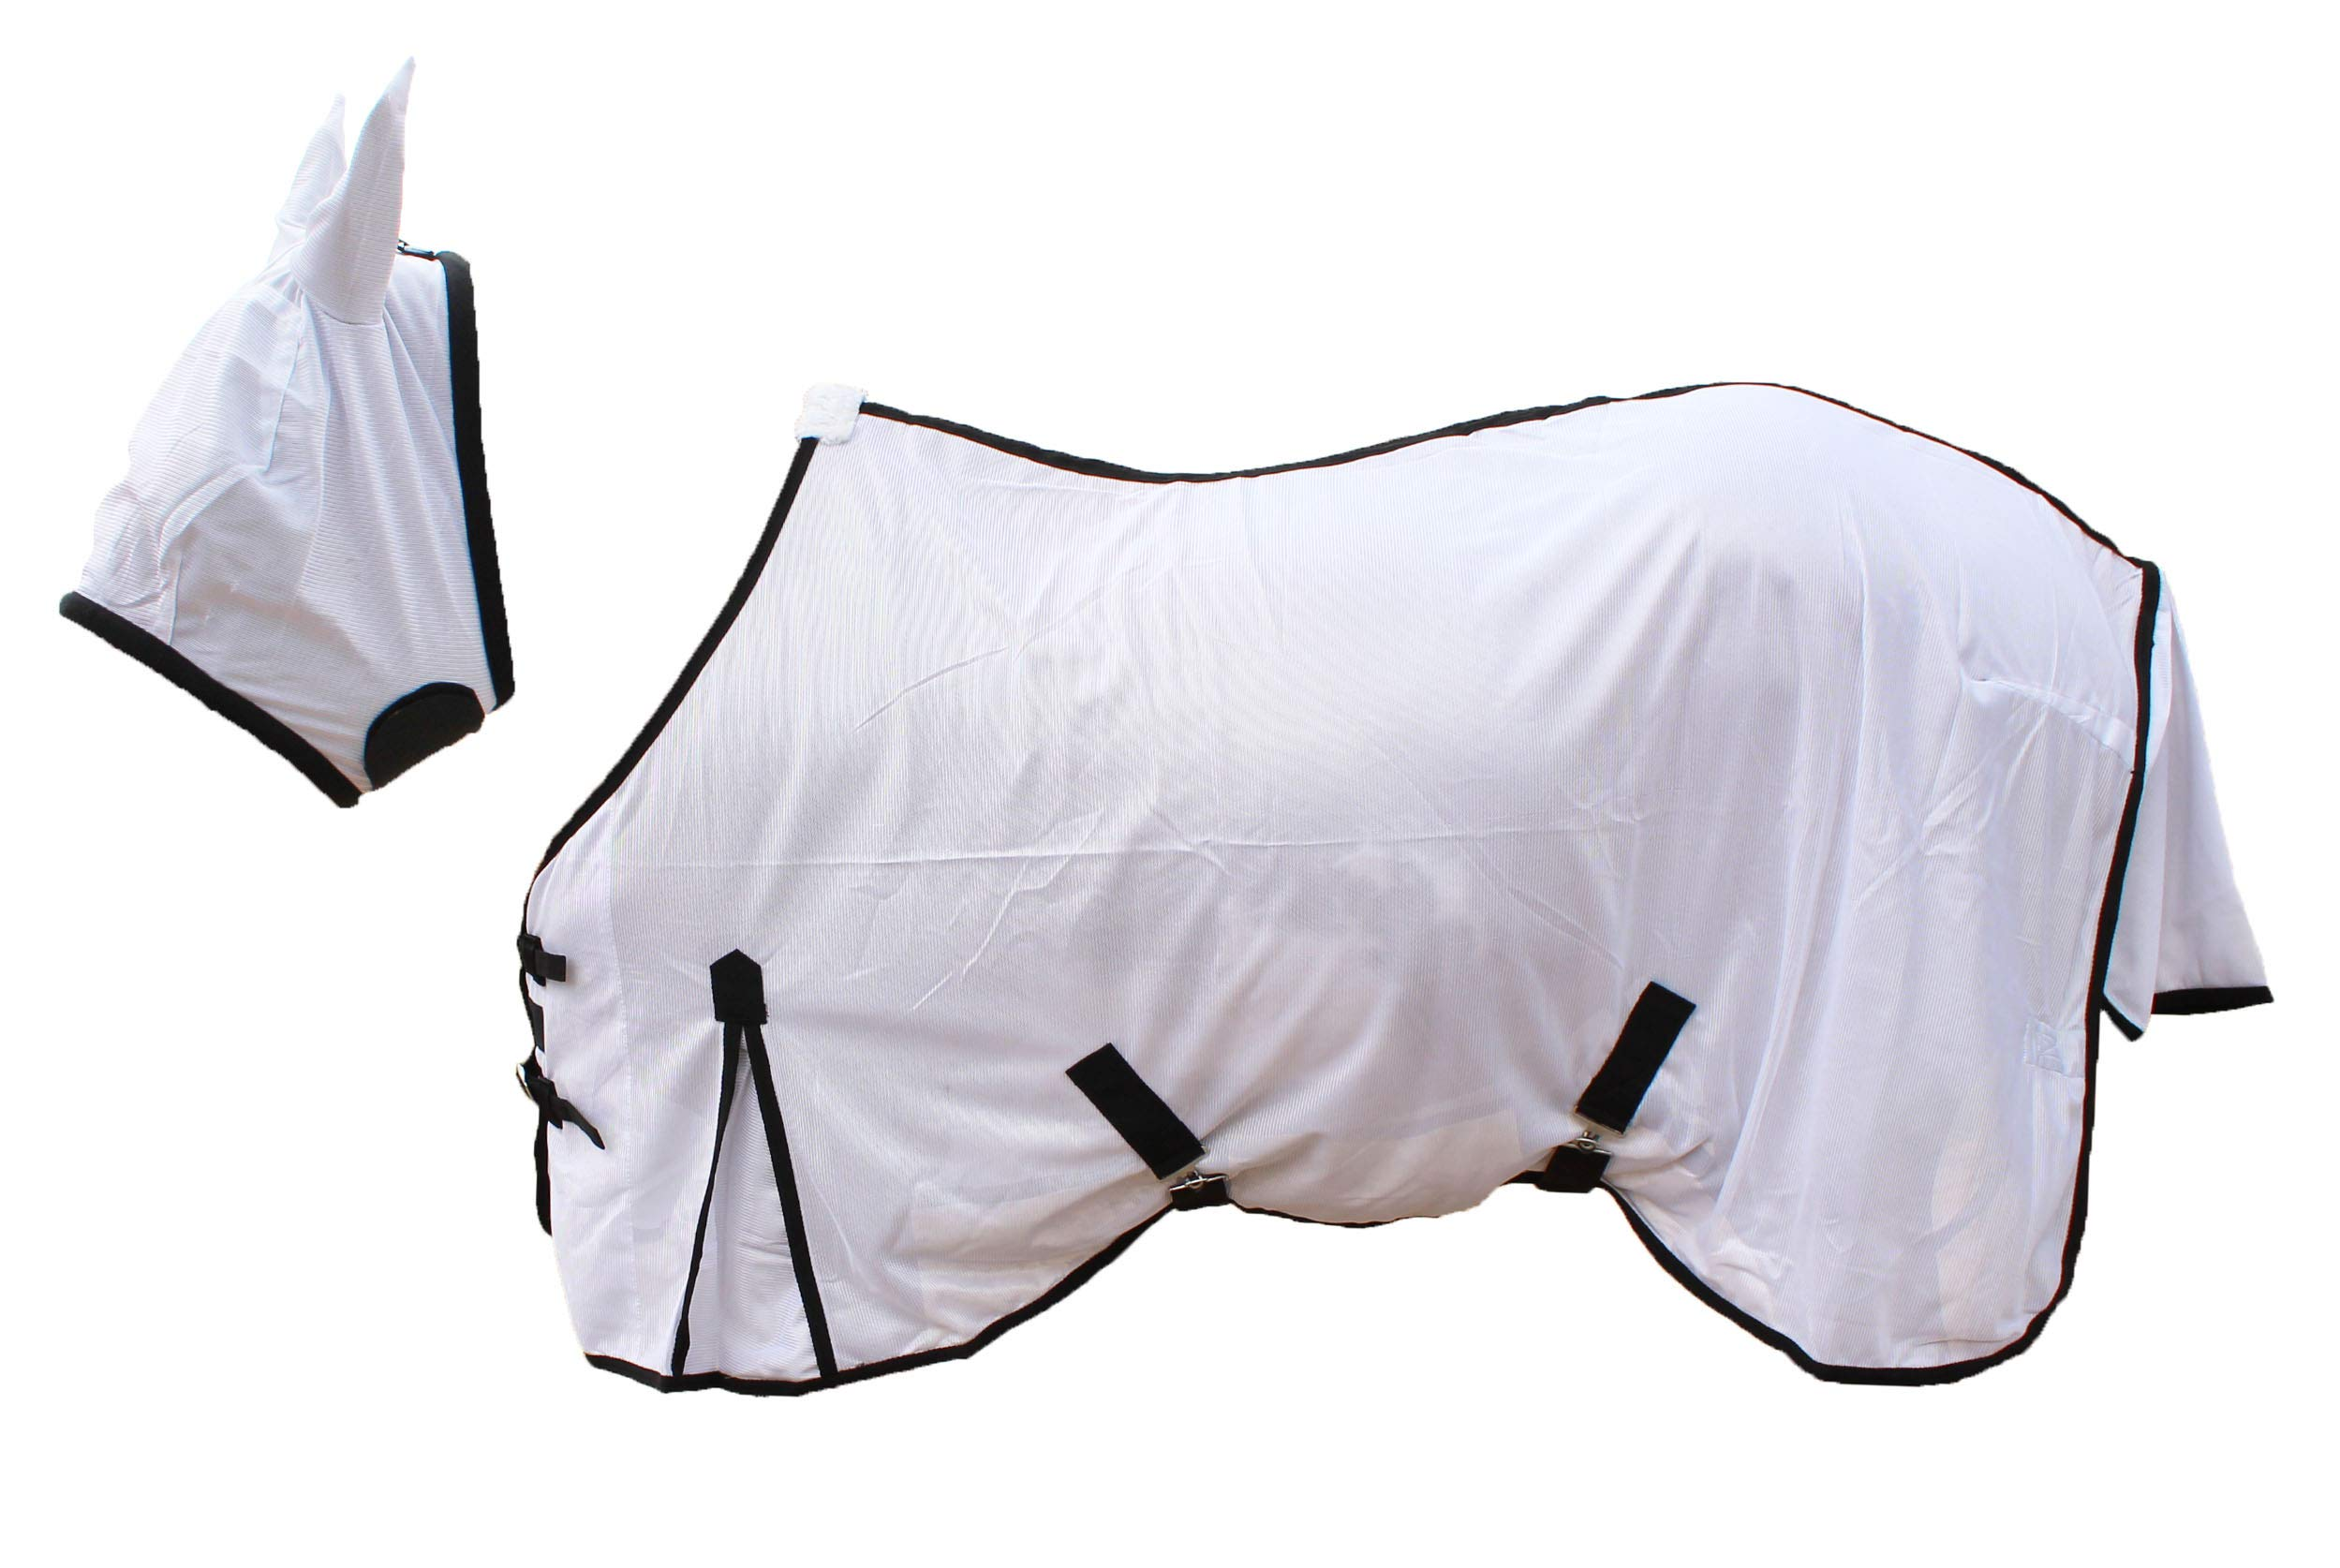 CHALLENGER 80'' Horse Fly Sheet Summer Spring Airflow Mesh UV 73TB01 by CHALLENGER